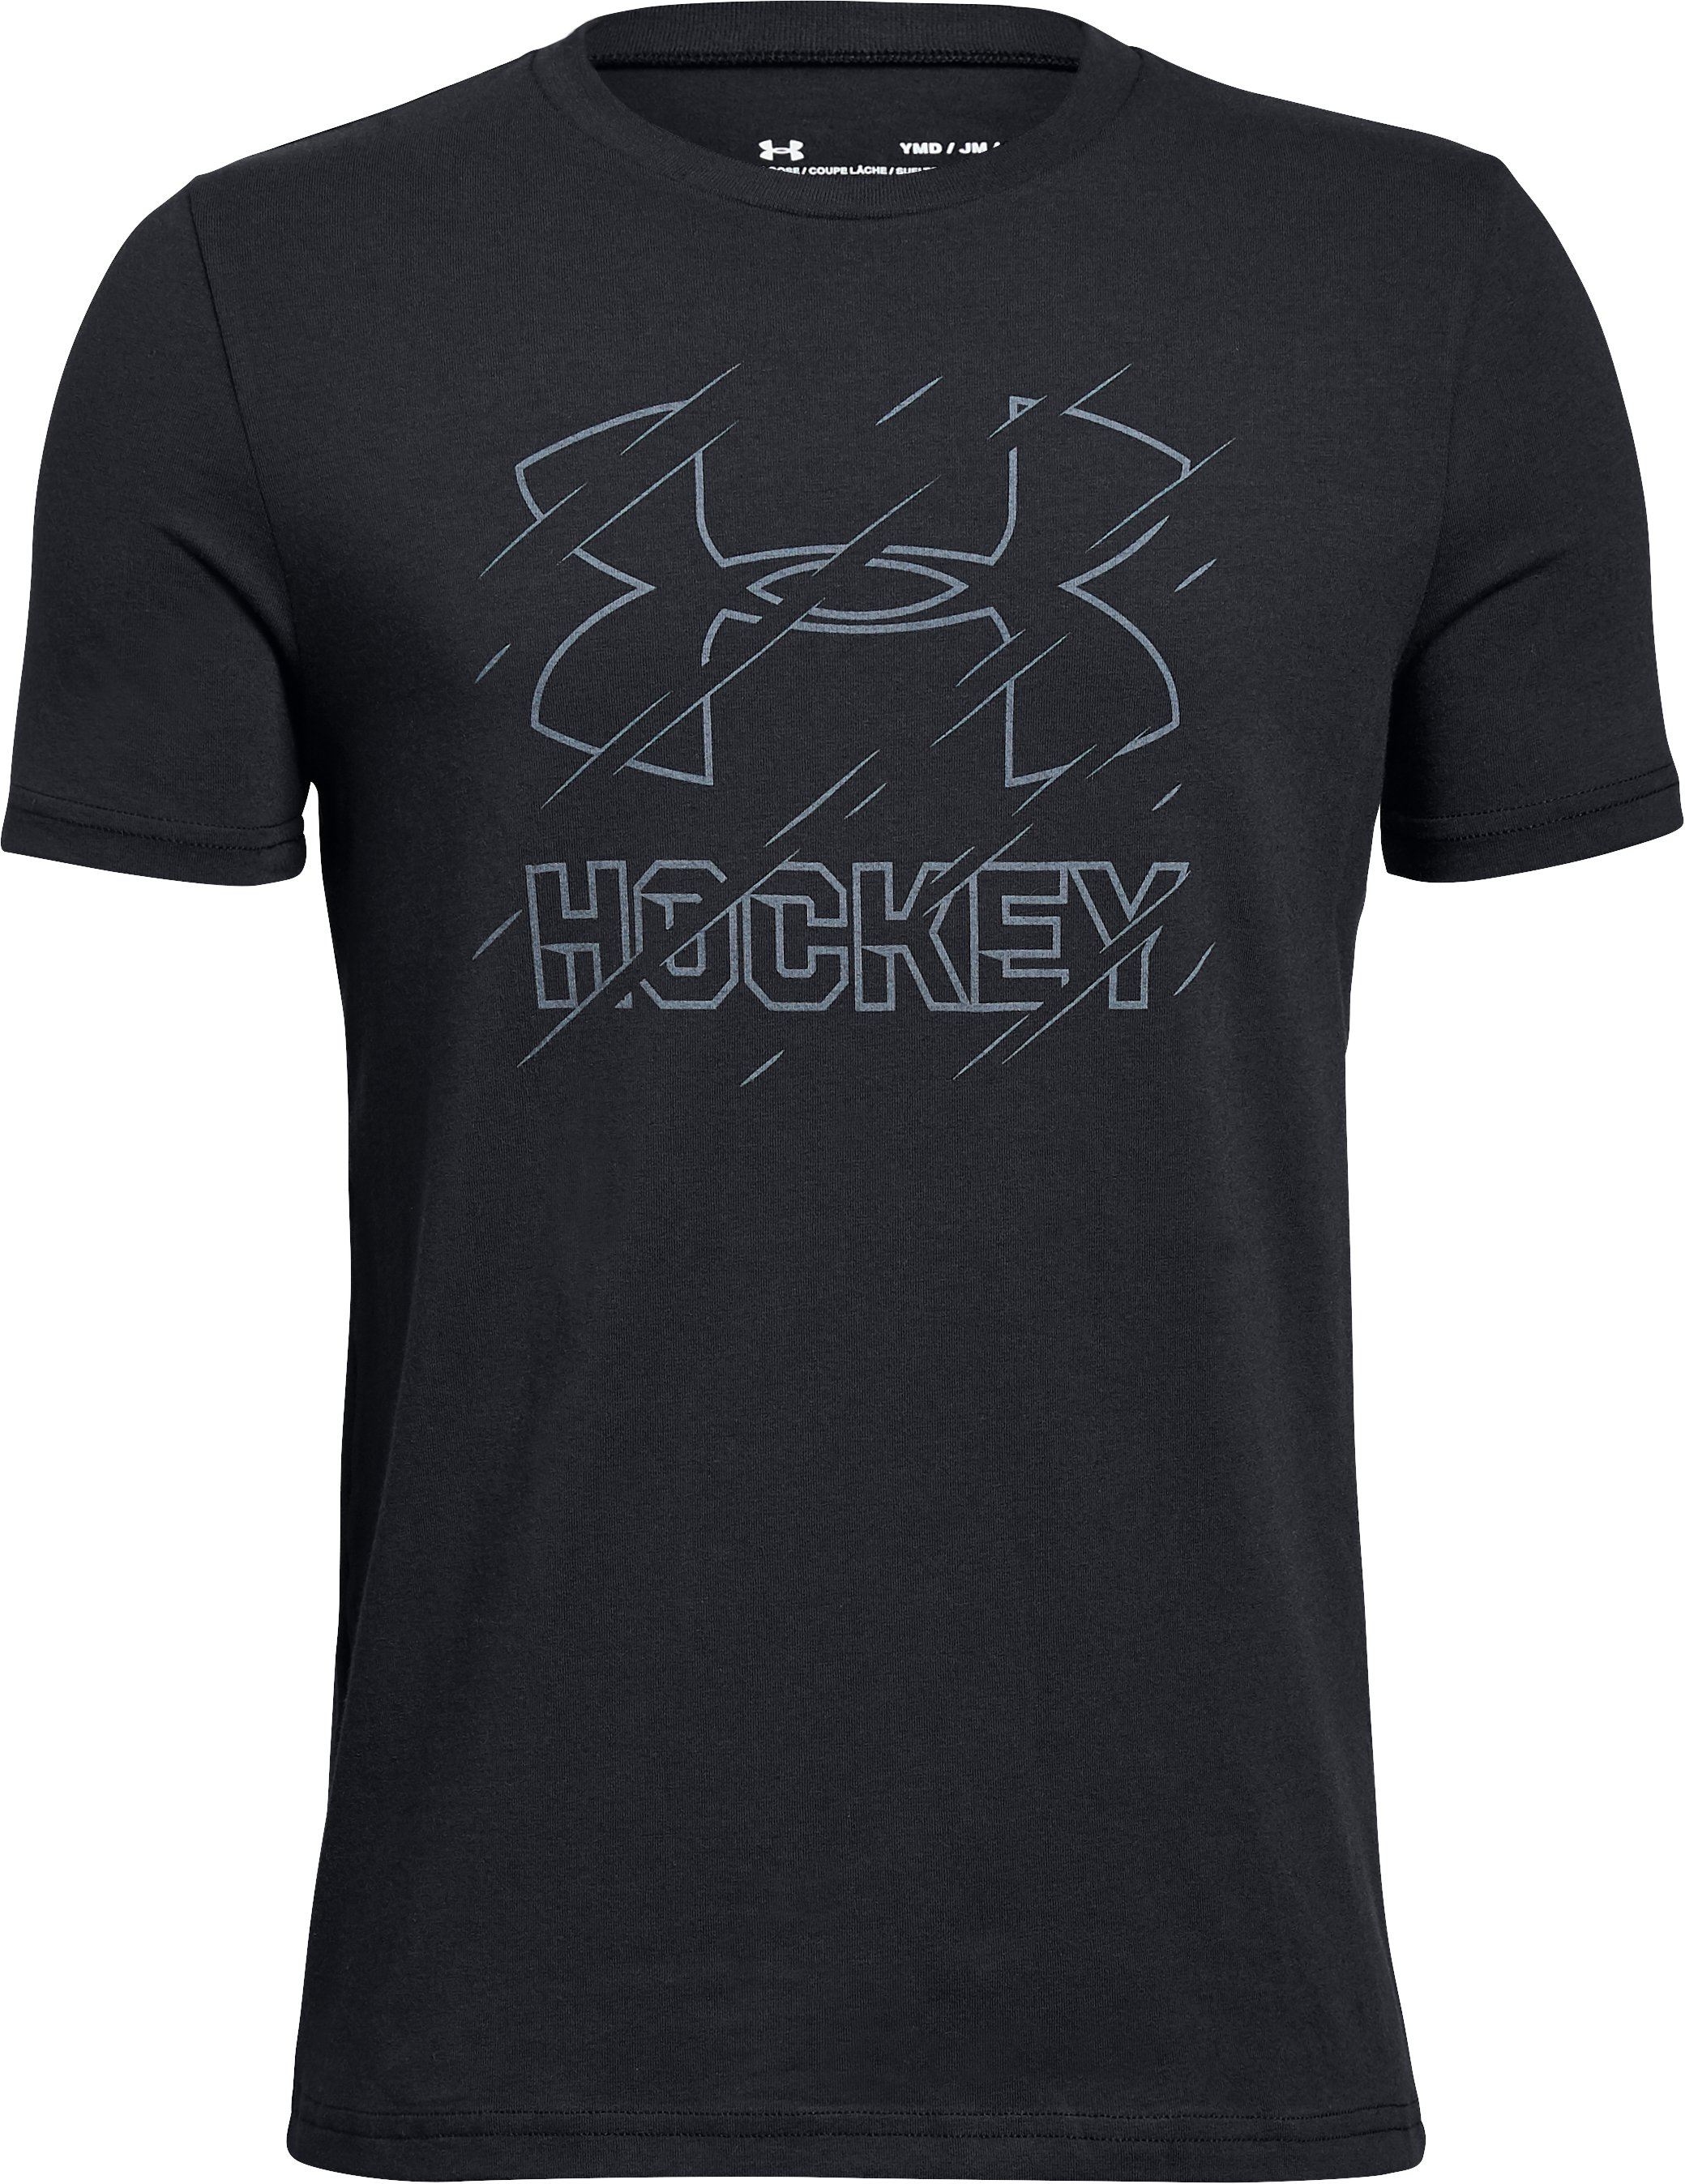 Boys' UA Hockey T-Shirt, Black , zoomed